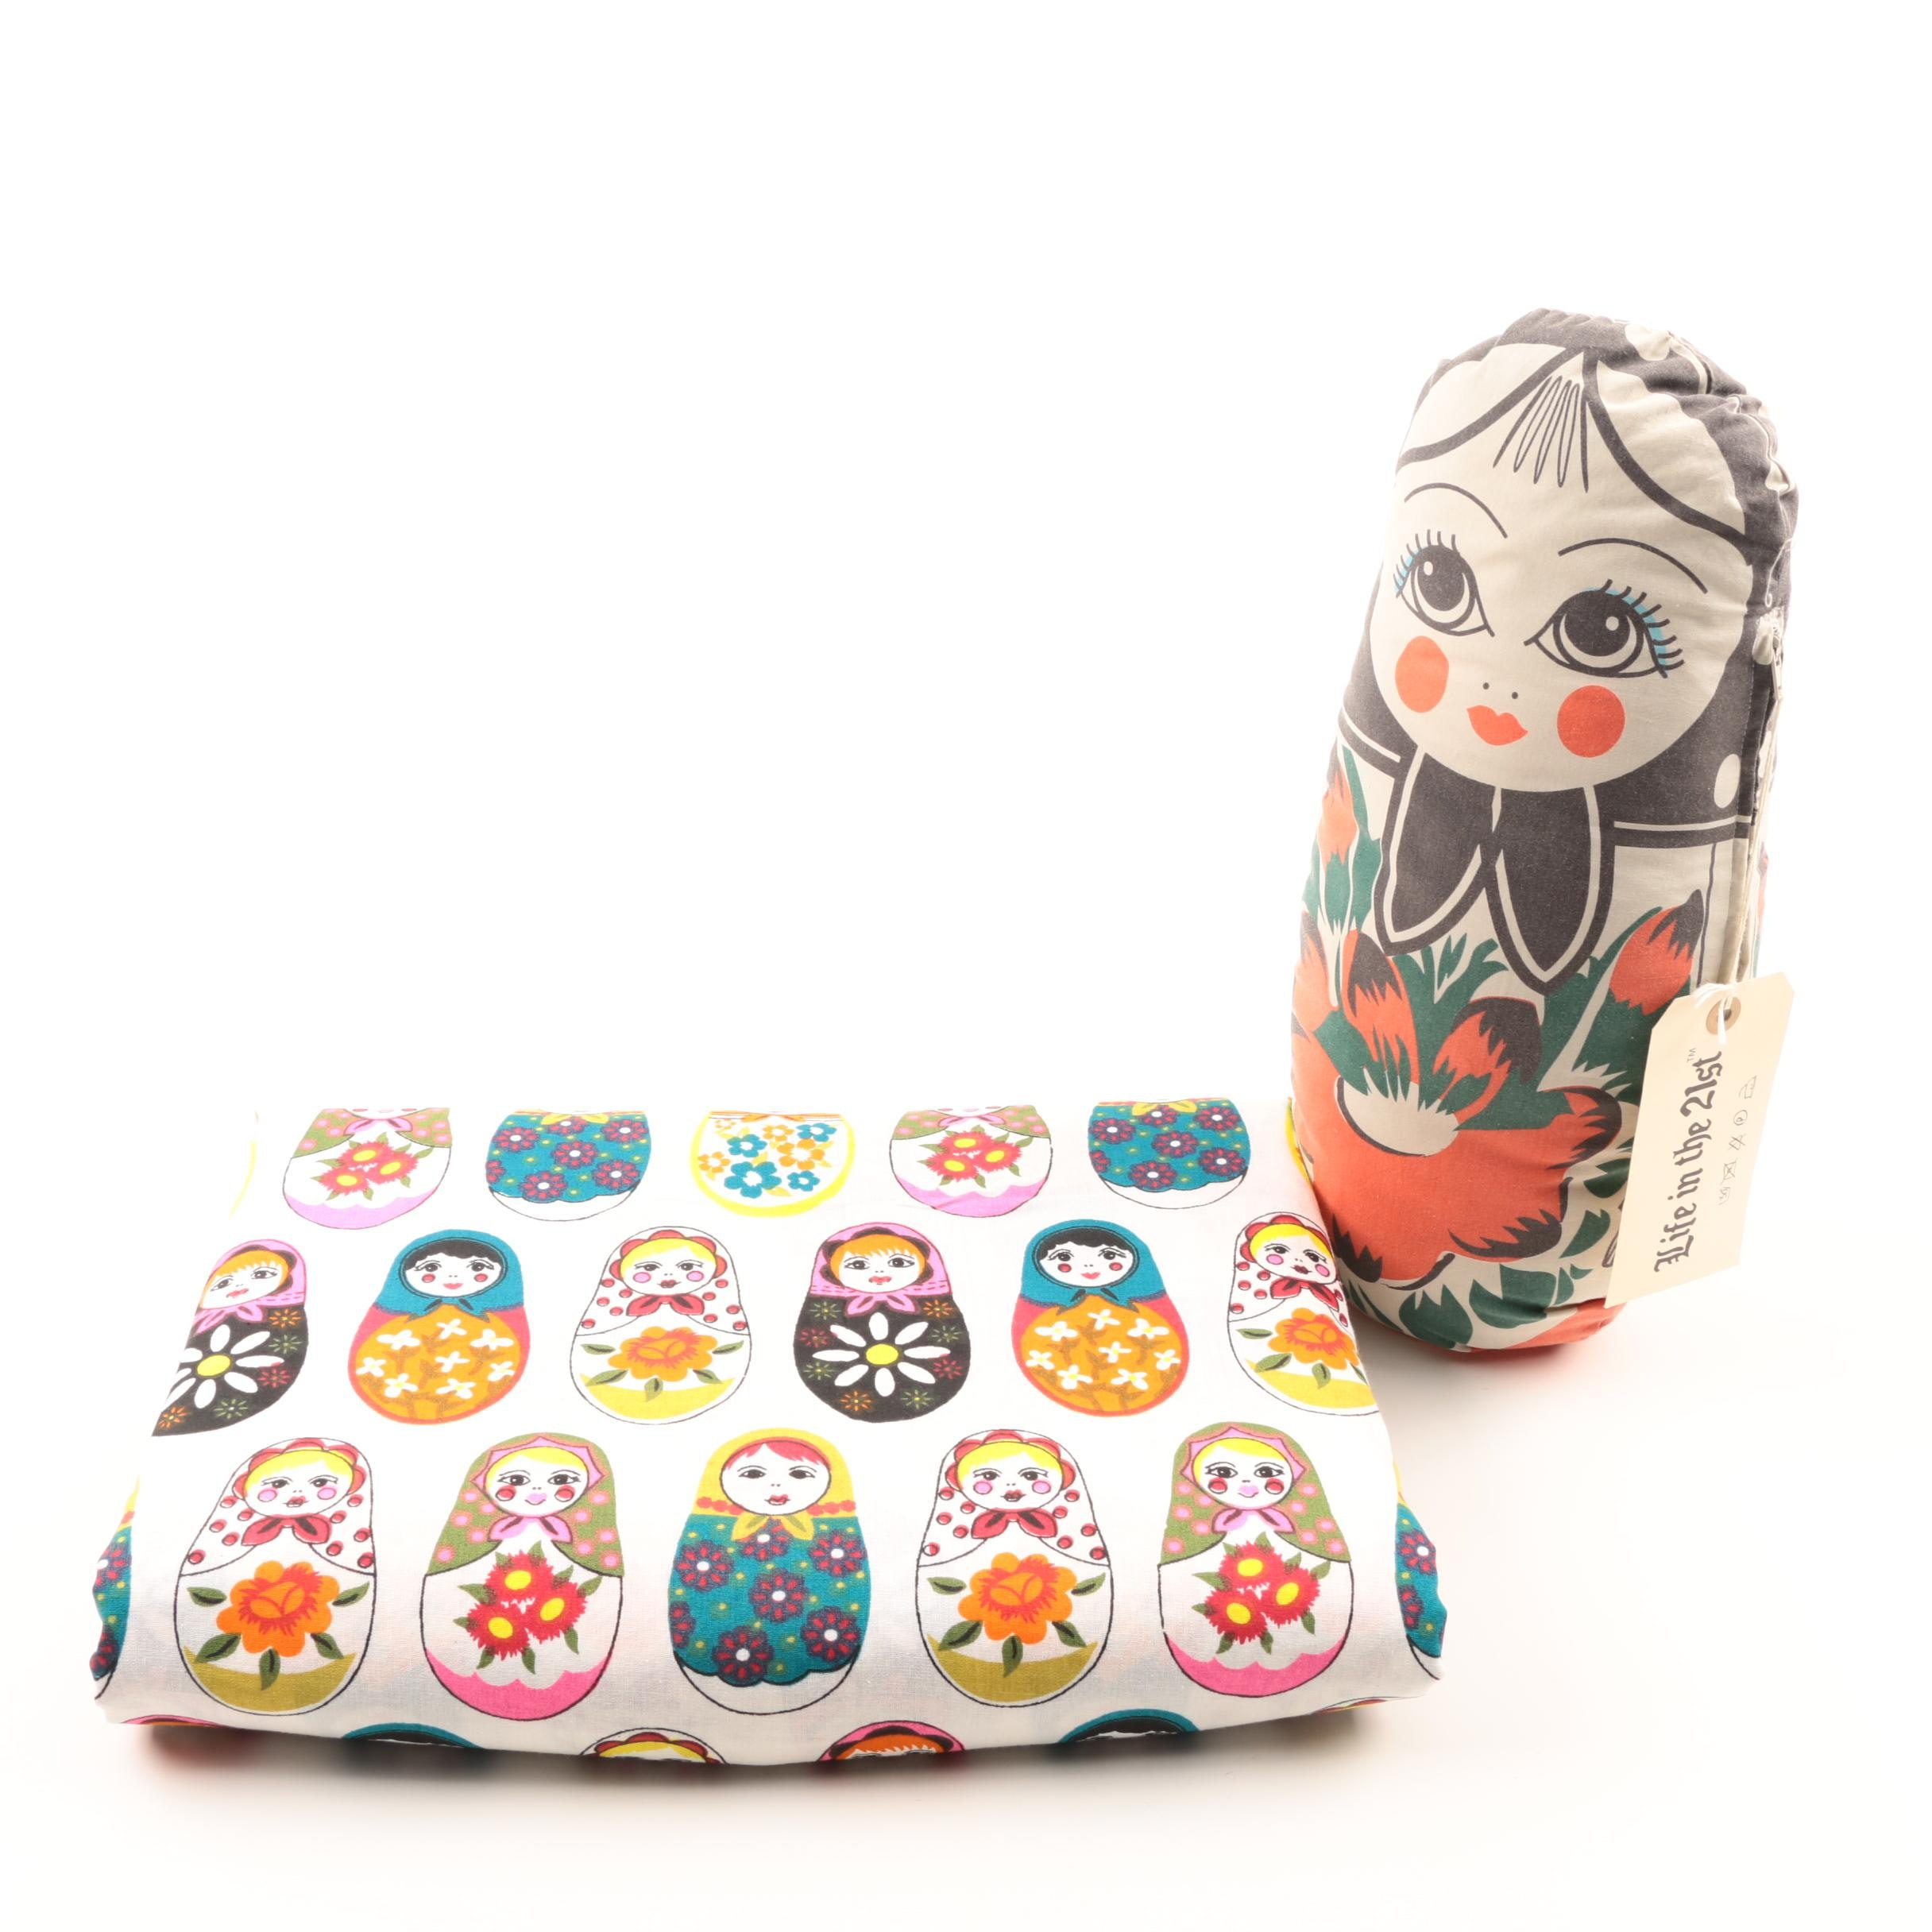 Cotton Tablecloth With Matryoska Russian Motif and Stuffed Doll